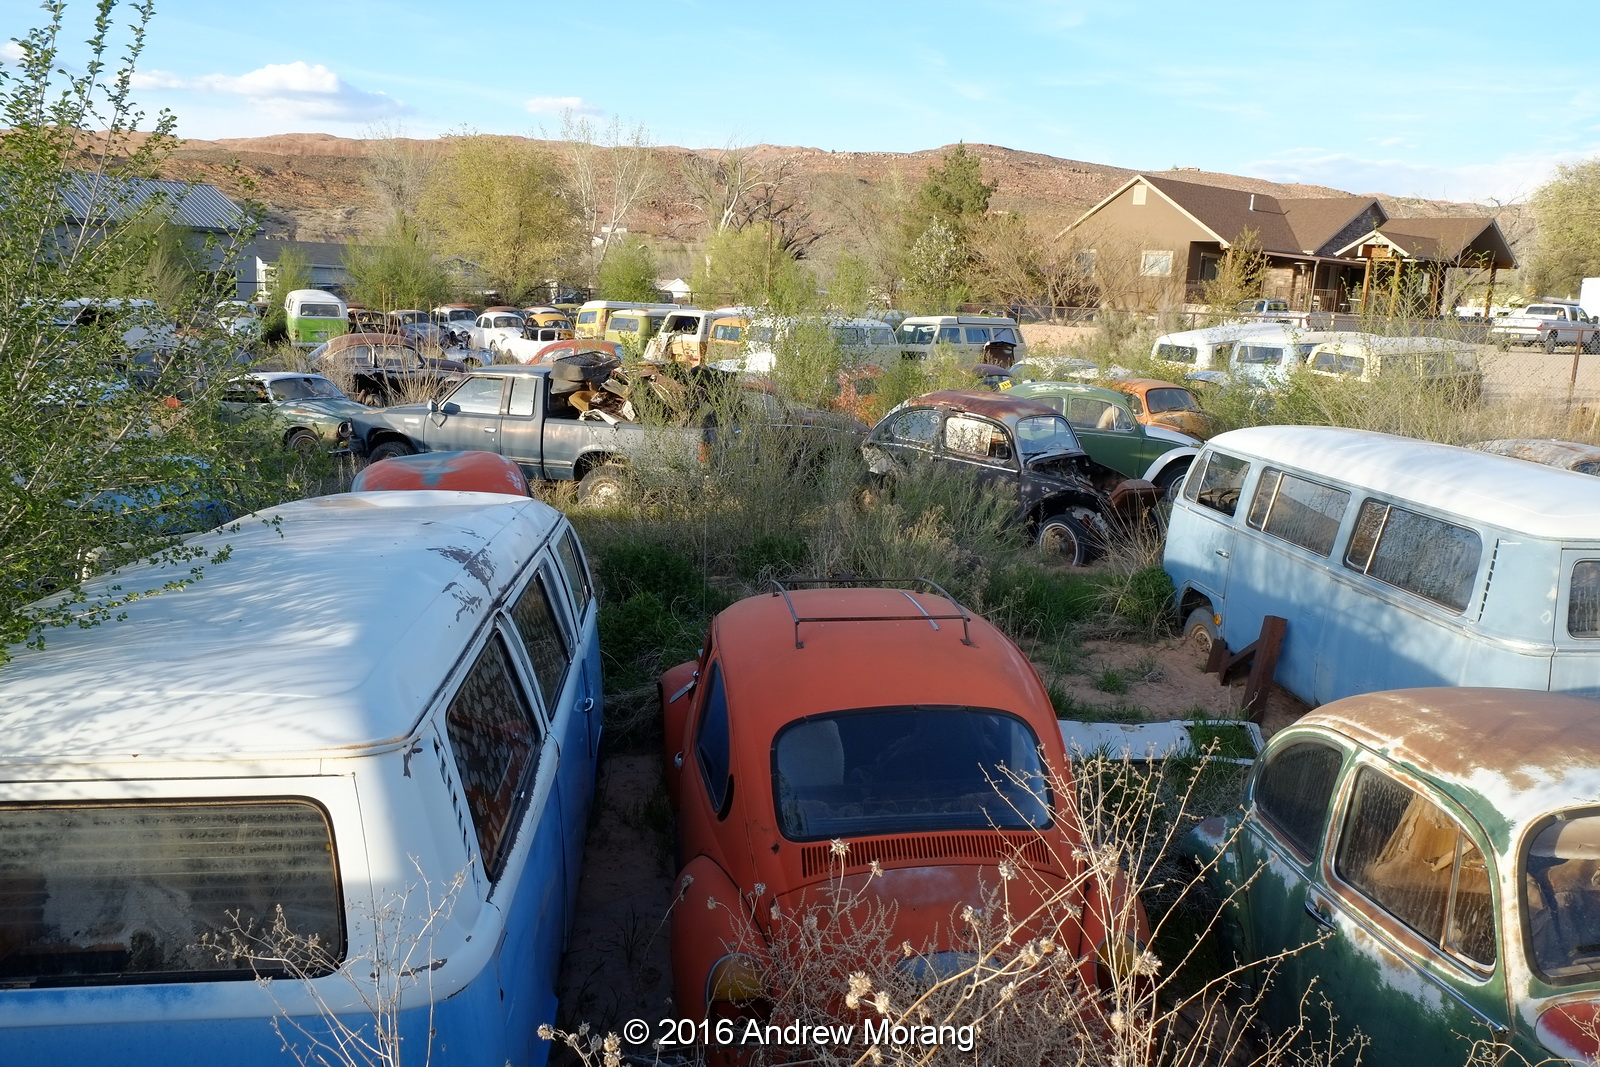 beetles vdub car last transporters tag nation row classic call in a volkswagen shows utah vw